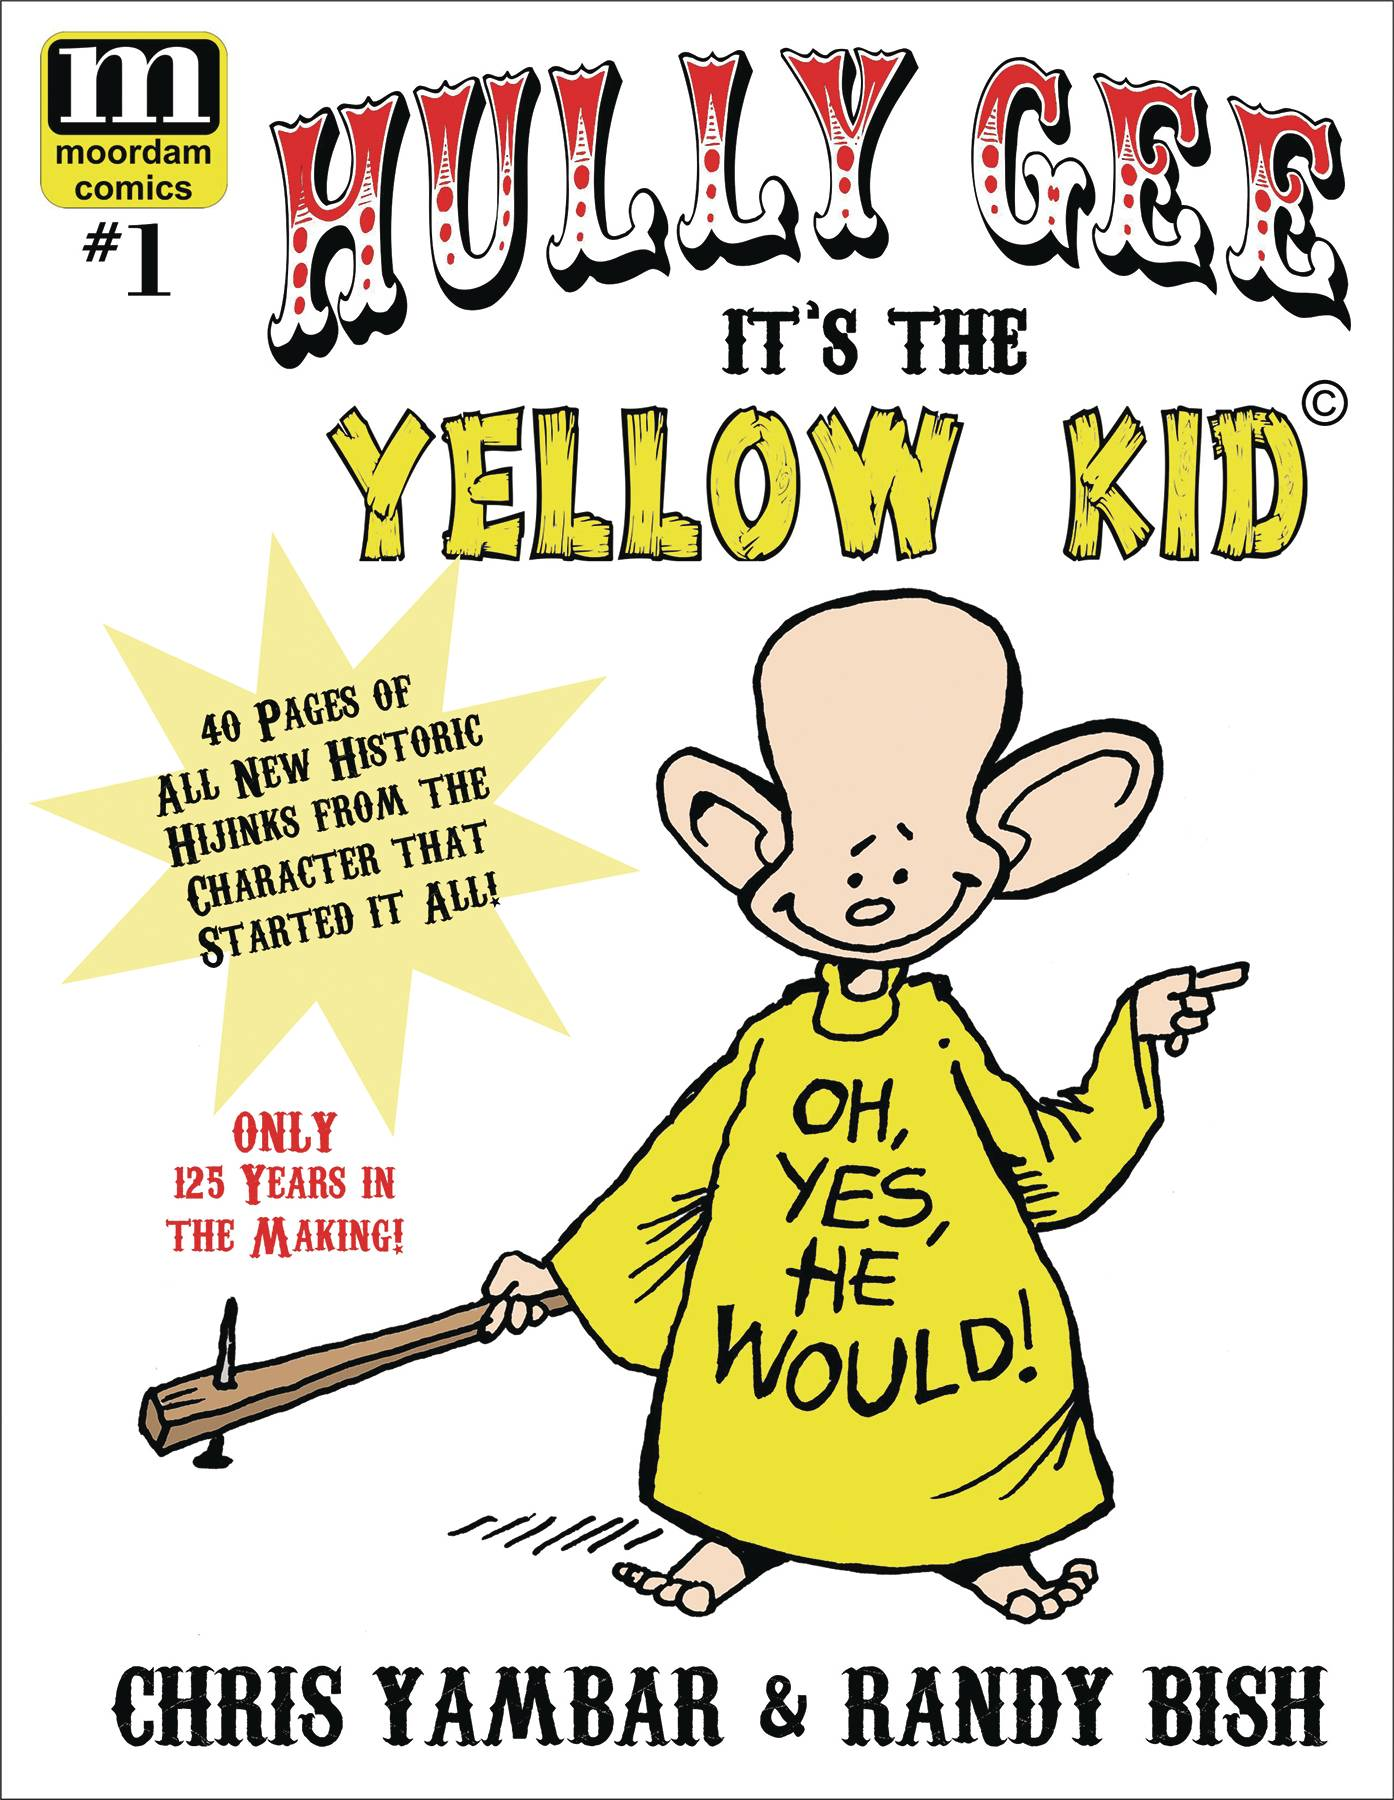 HULLY GEE ITS THE YELLOW KID